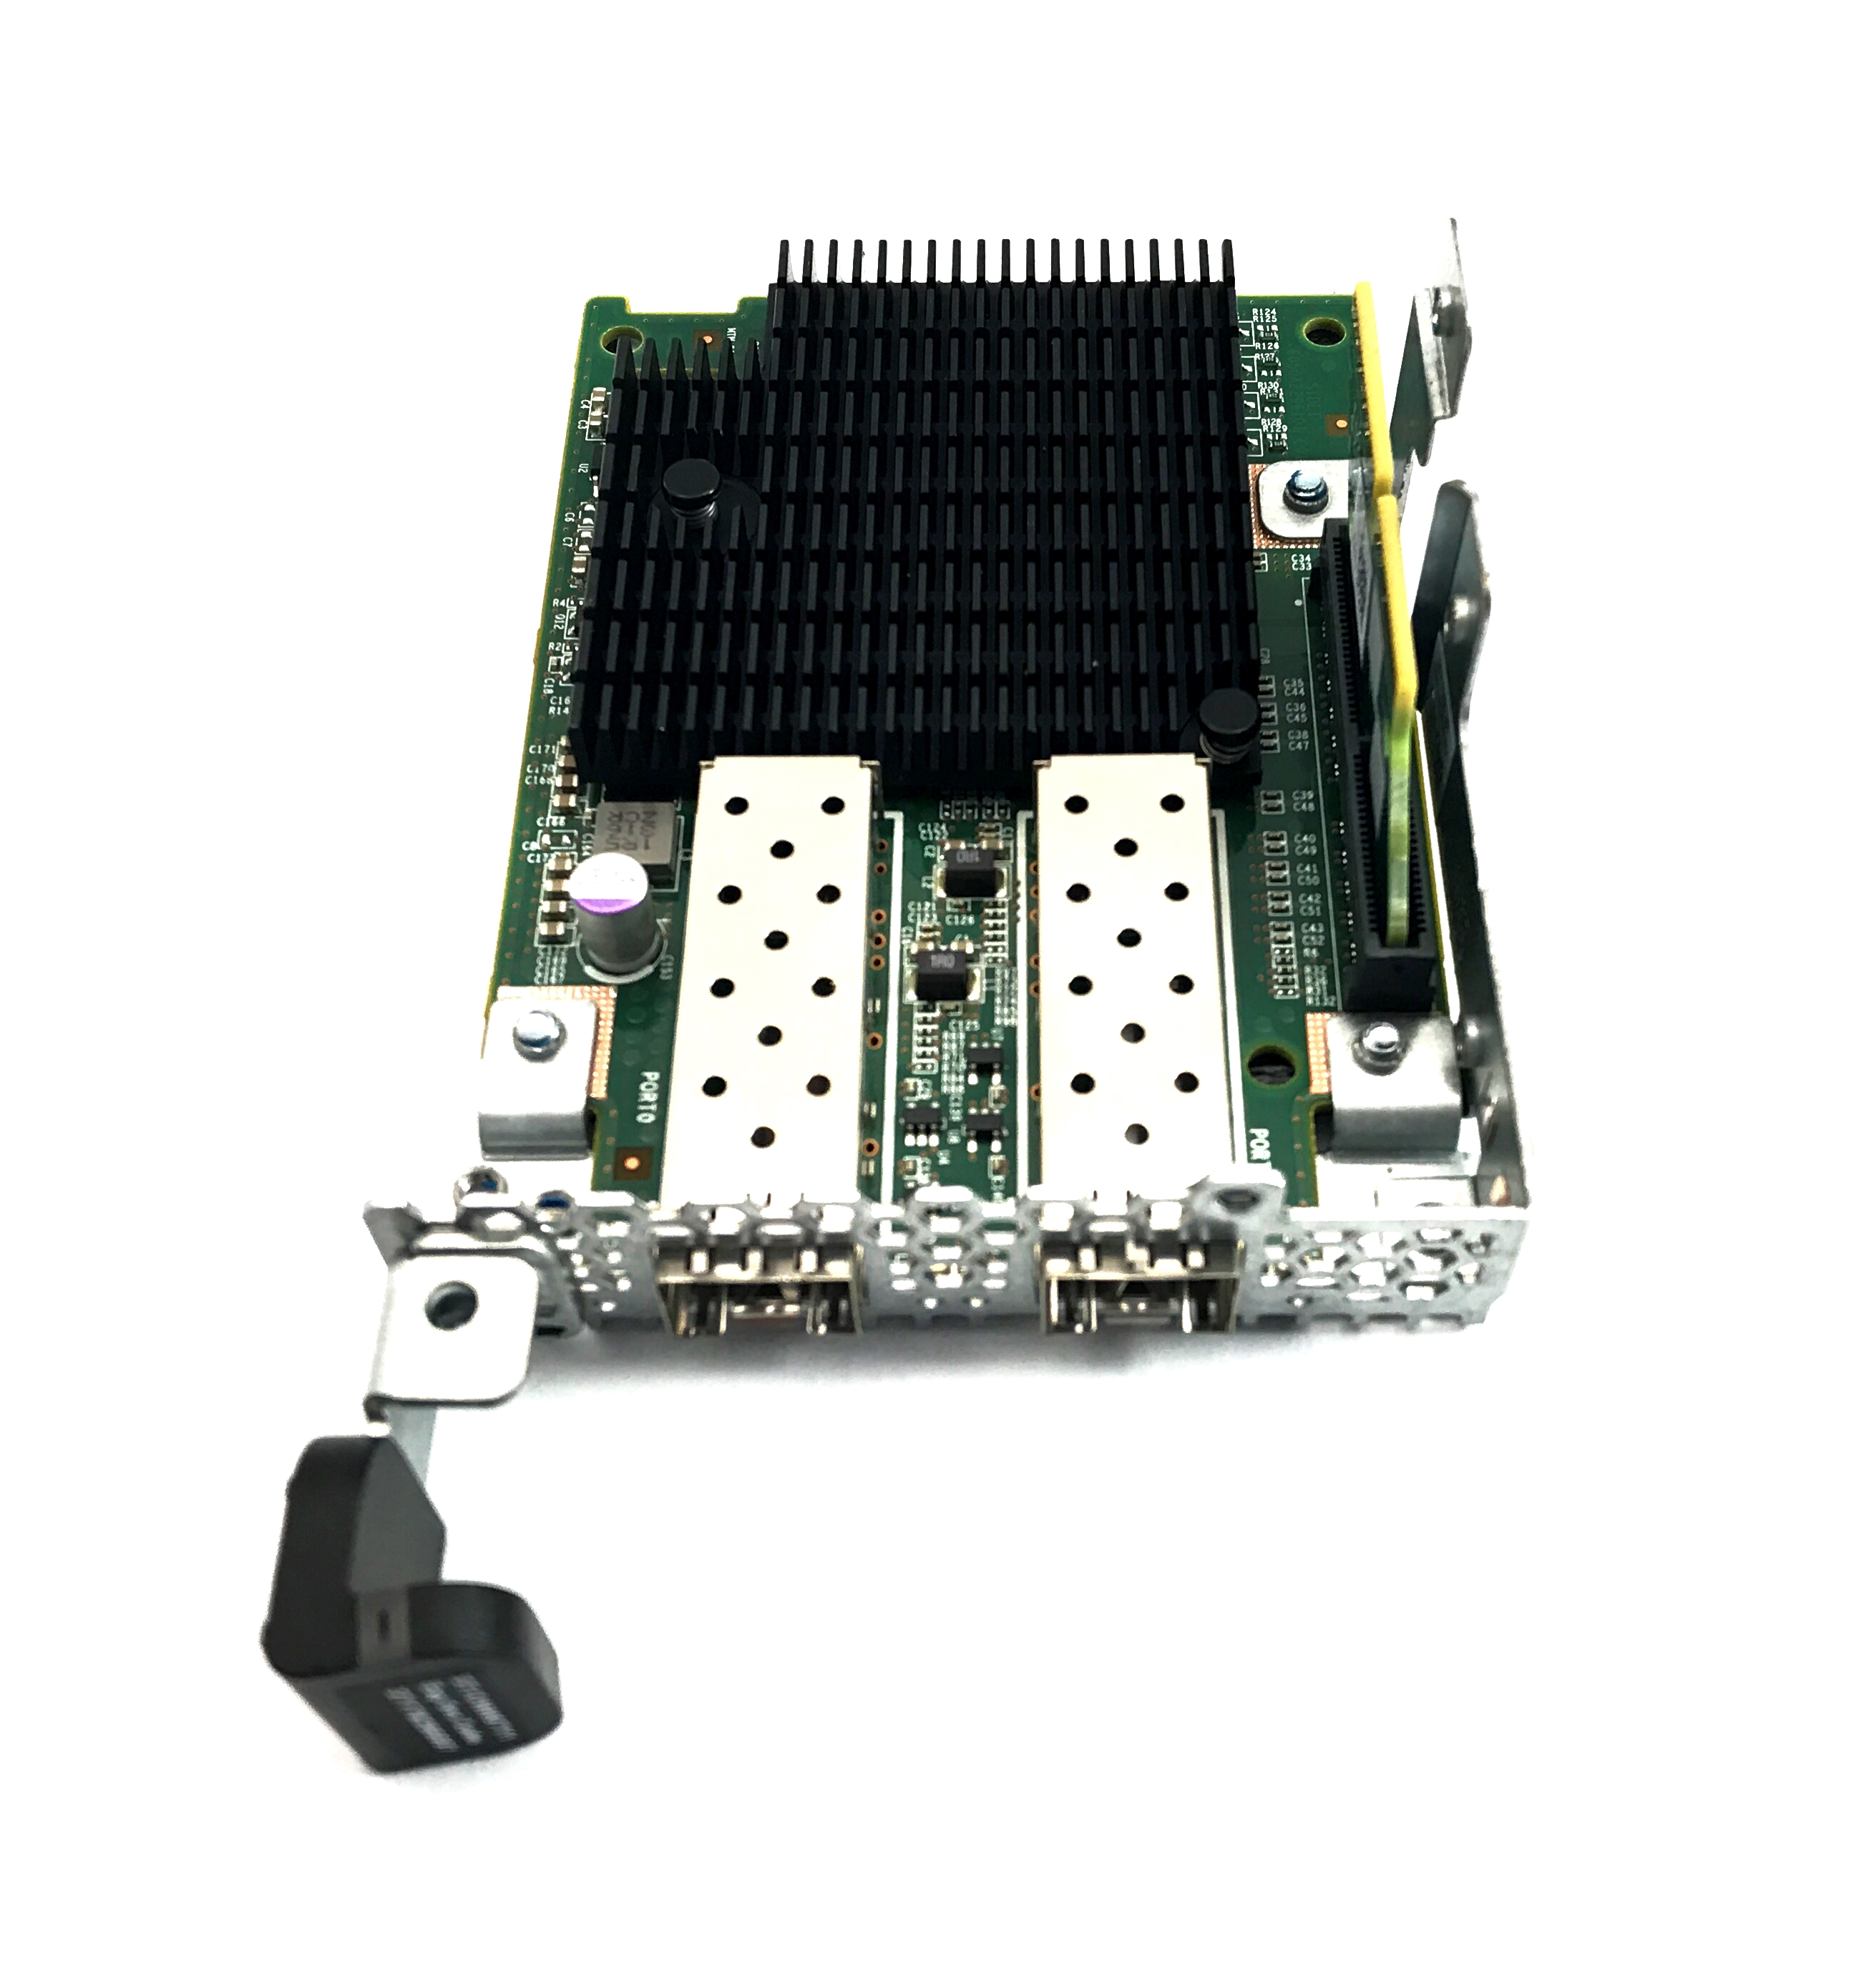 DELL 10GBE SFP PCI-E DUAL PORT MEZZANINE CARD FOR C6220 (X53DF)